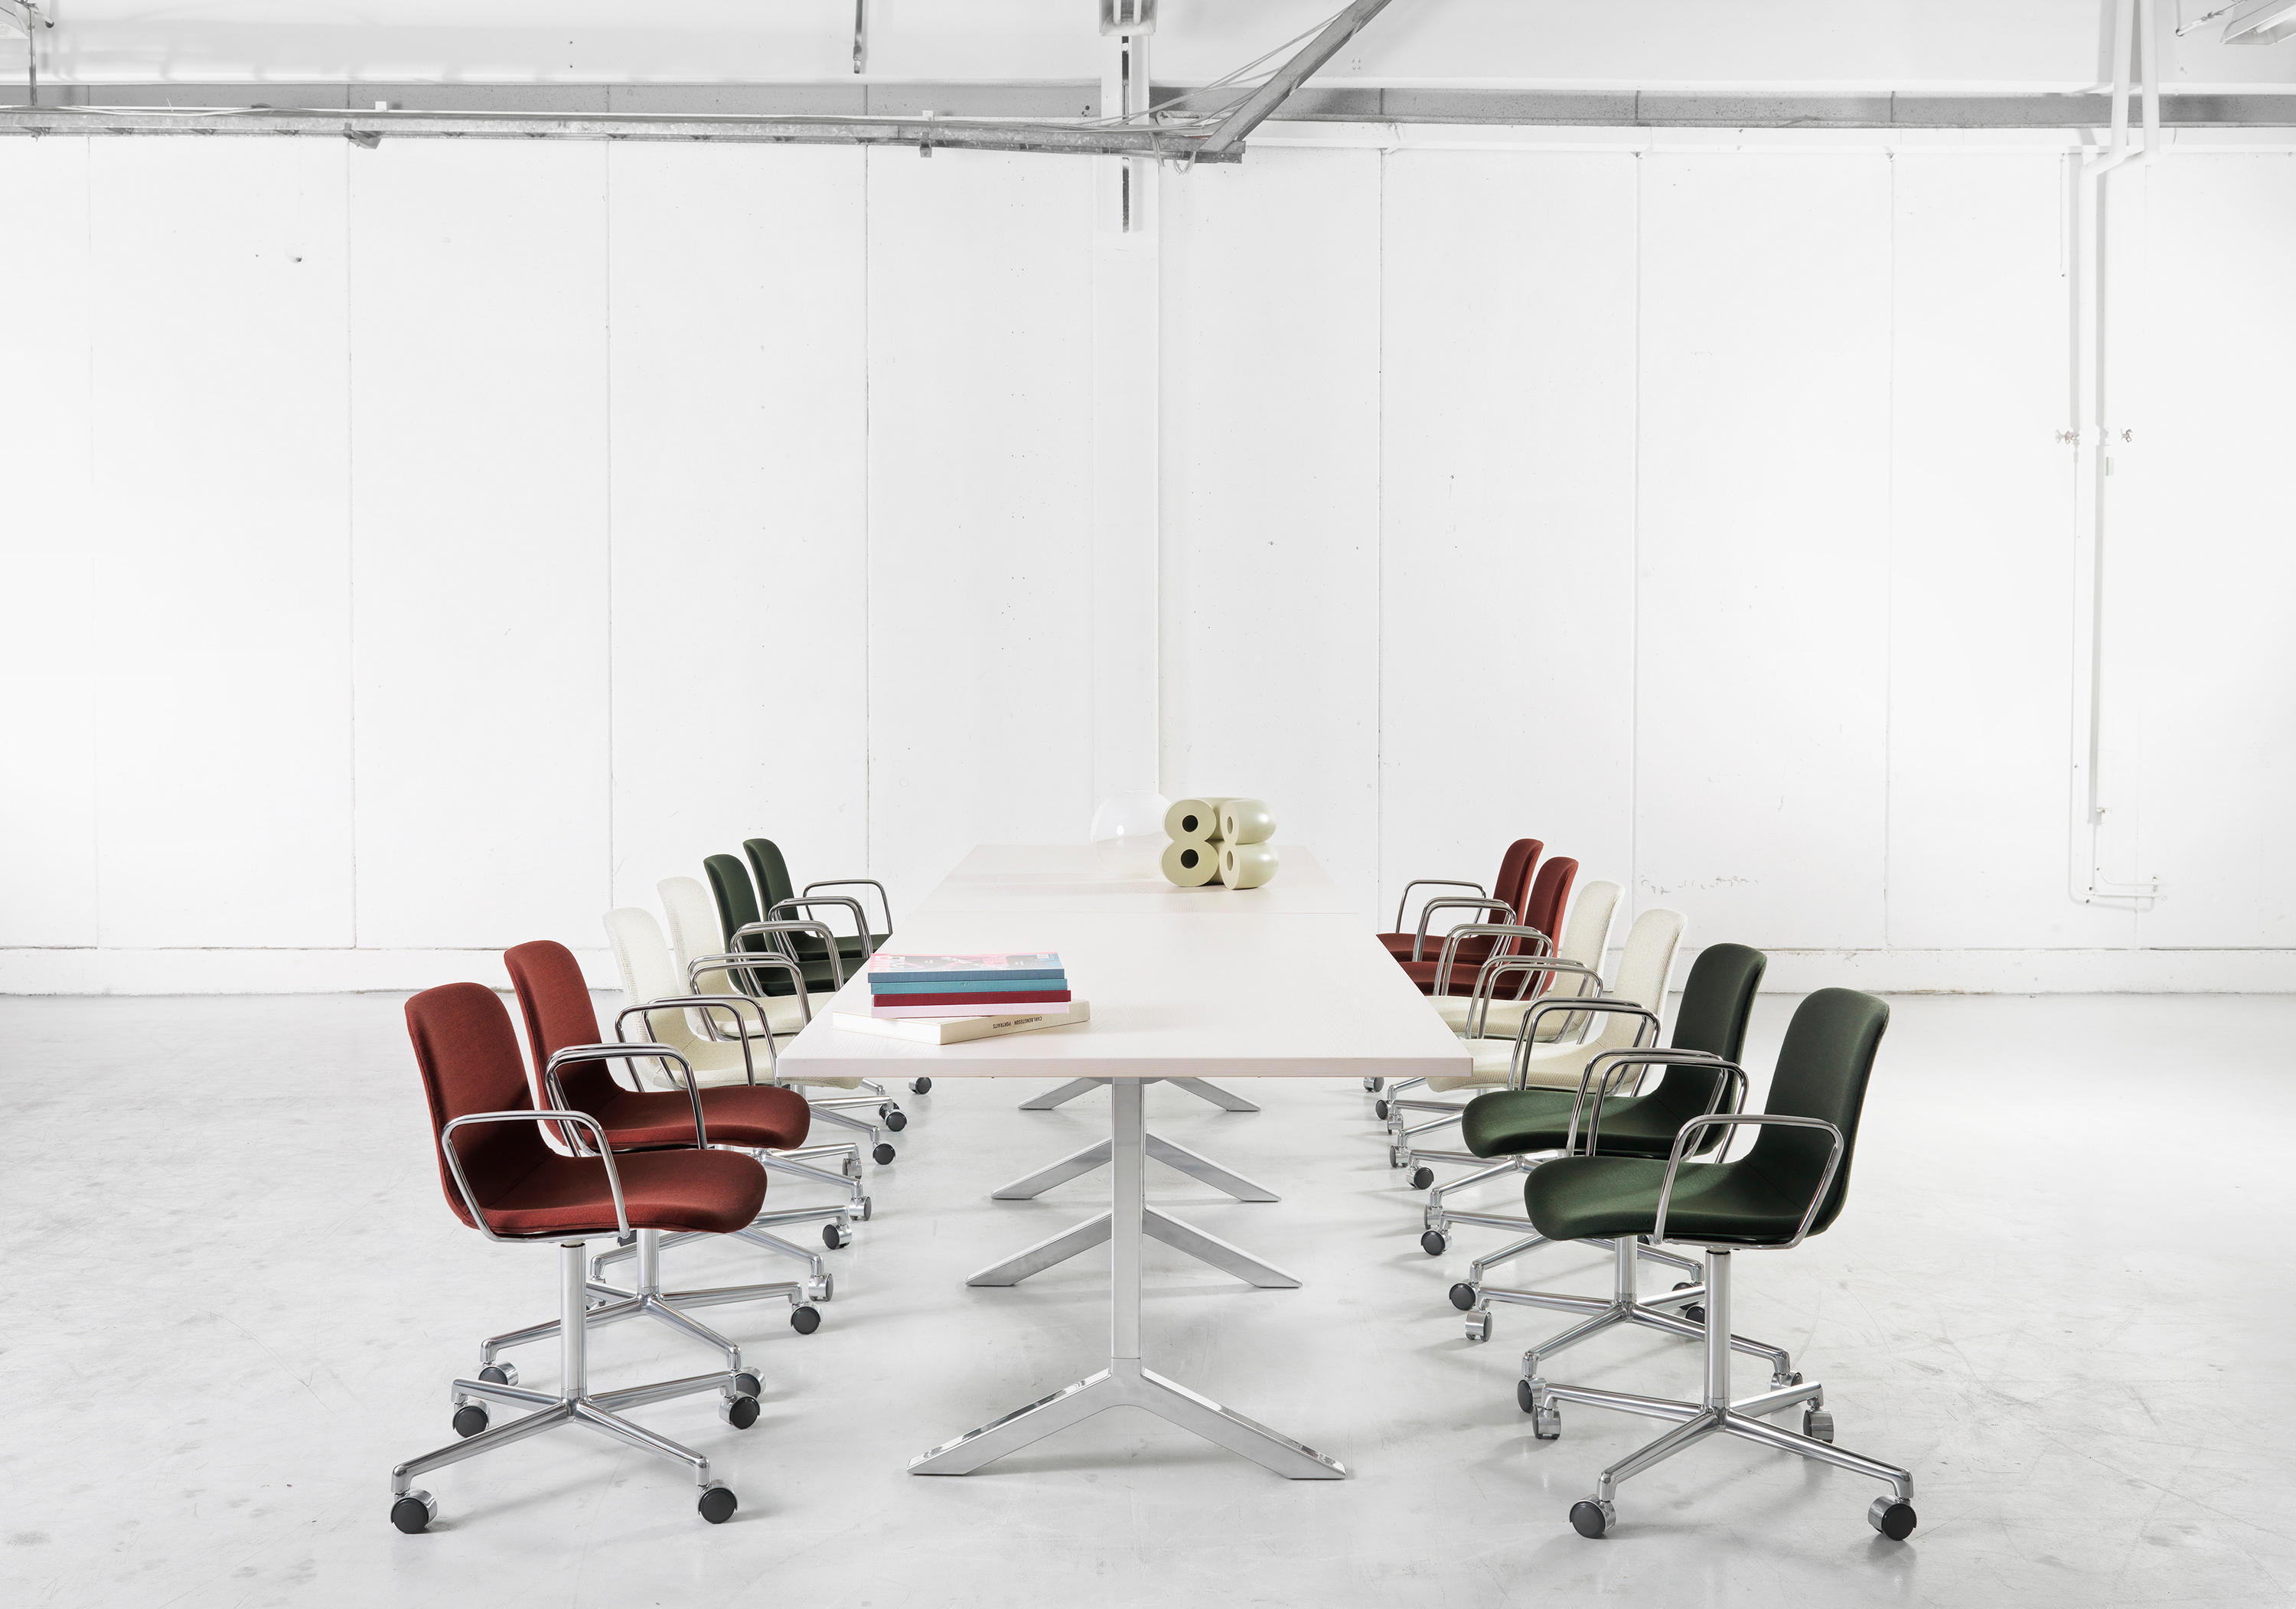 GRADE CHAIR Restaurant chairs from Lammhults Archit